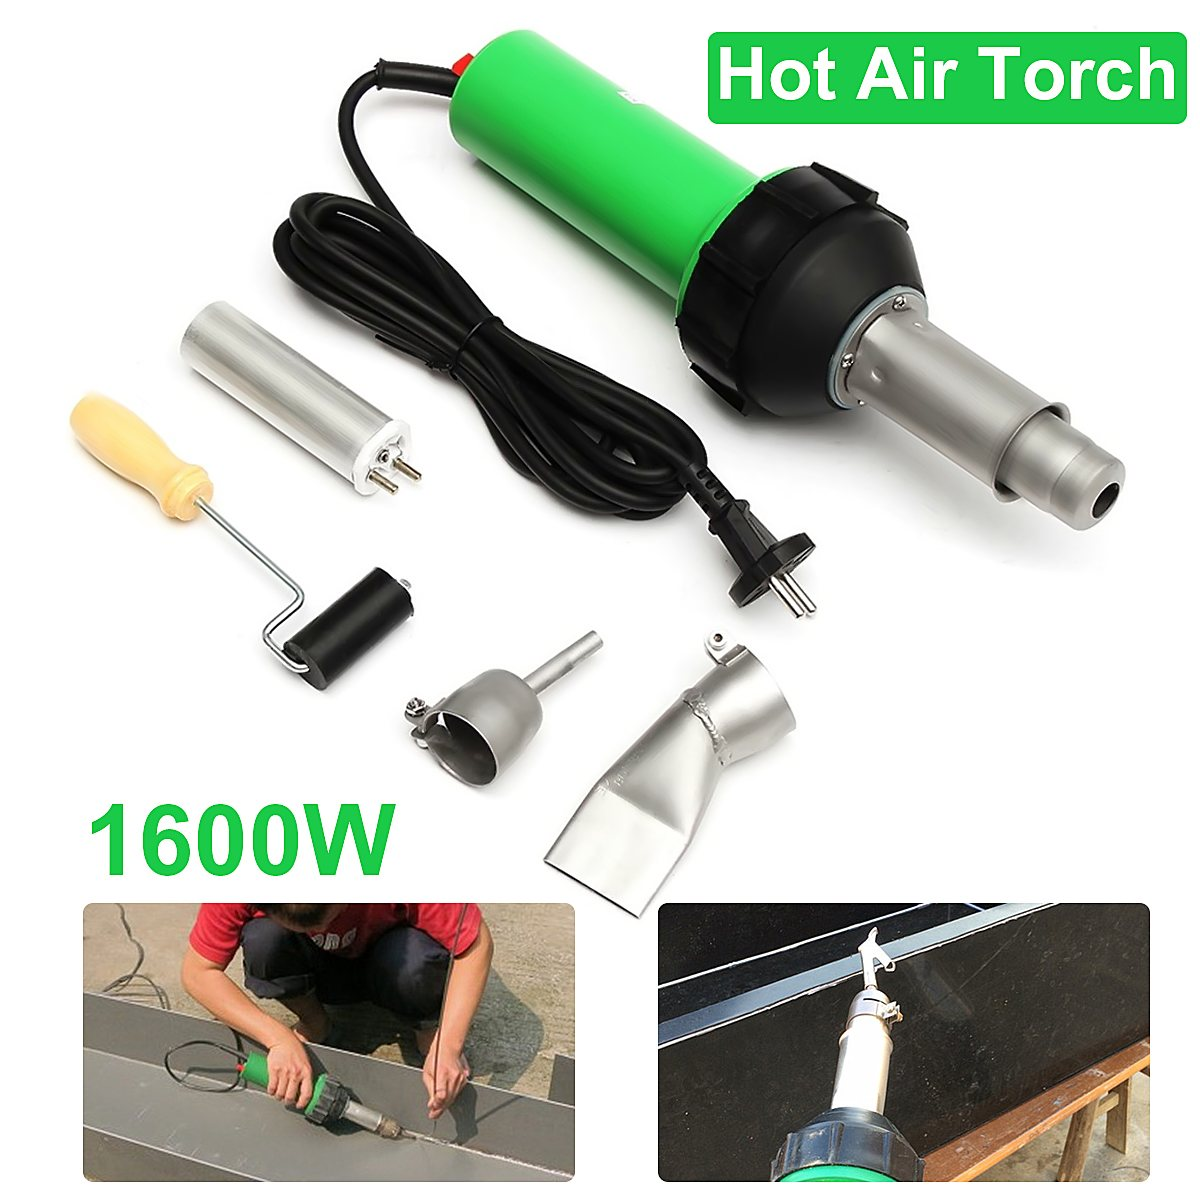 High Quality 1600W 50Hz Electronic Heat Hot Air Torch Plastic Welding Welder Torch + Nozzle + Pressure Roller 3000Pa Tool Set tp760 765 hz d7 0 1221a